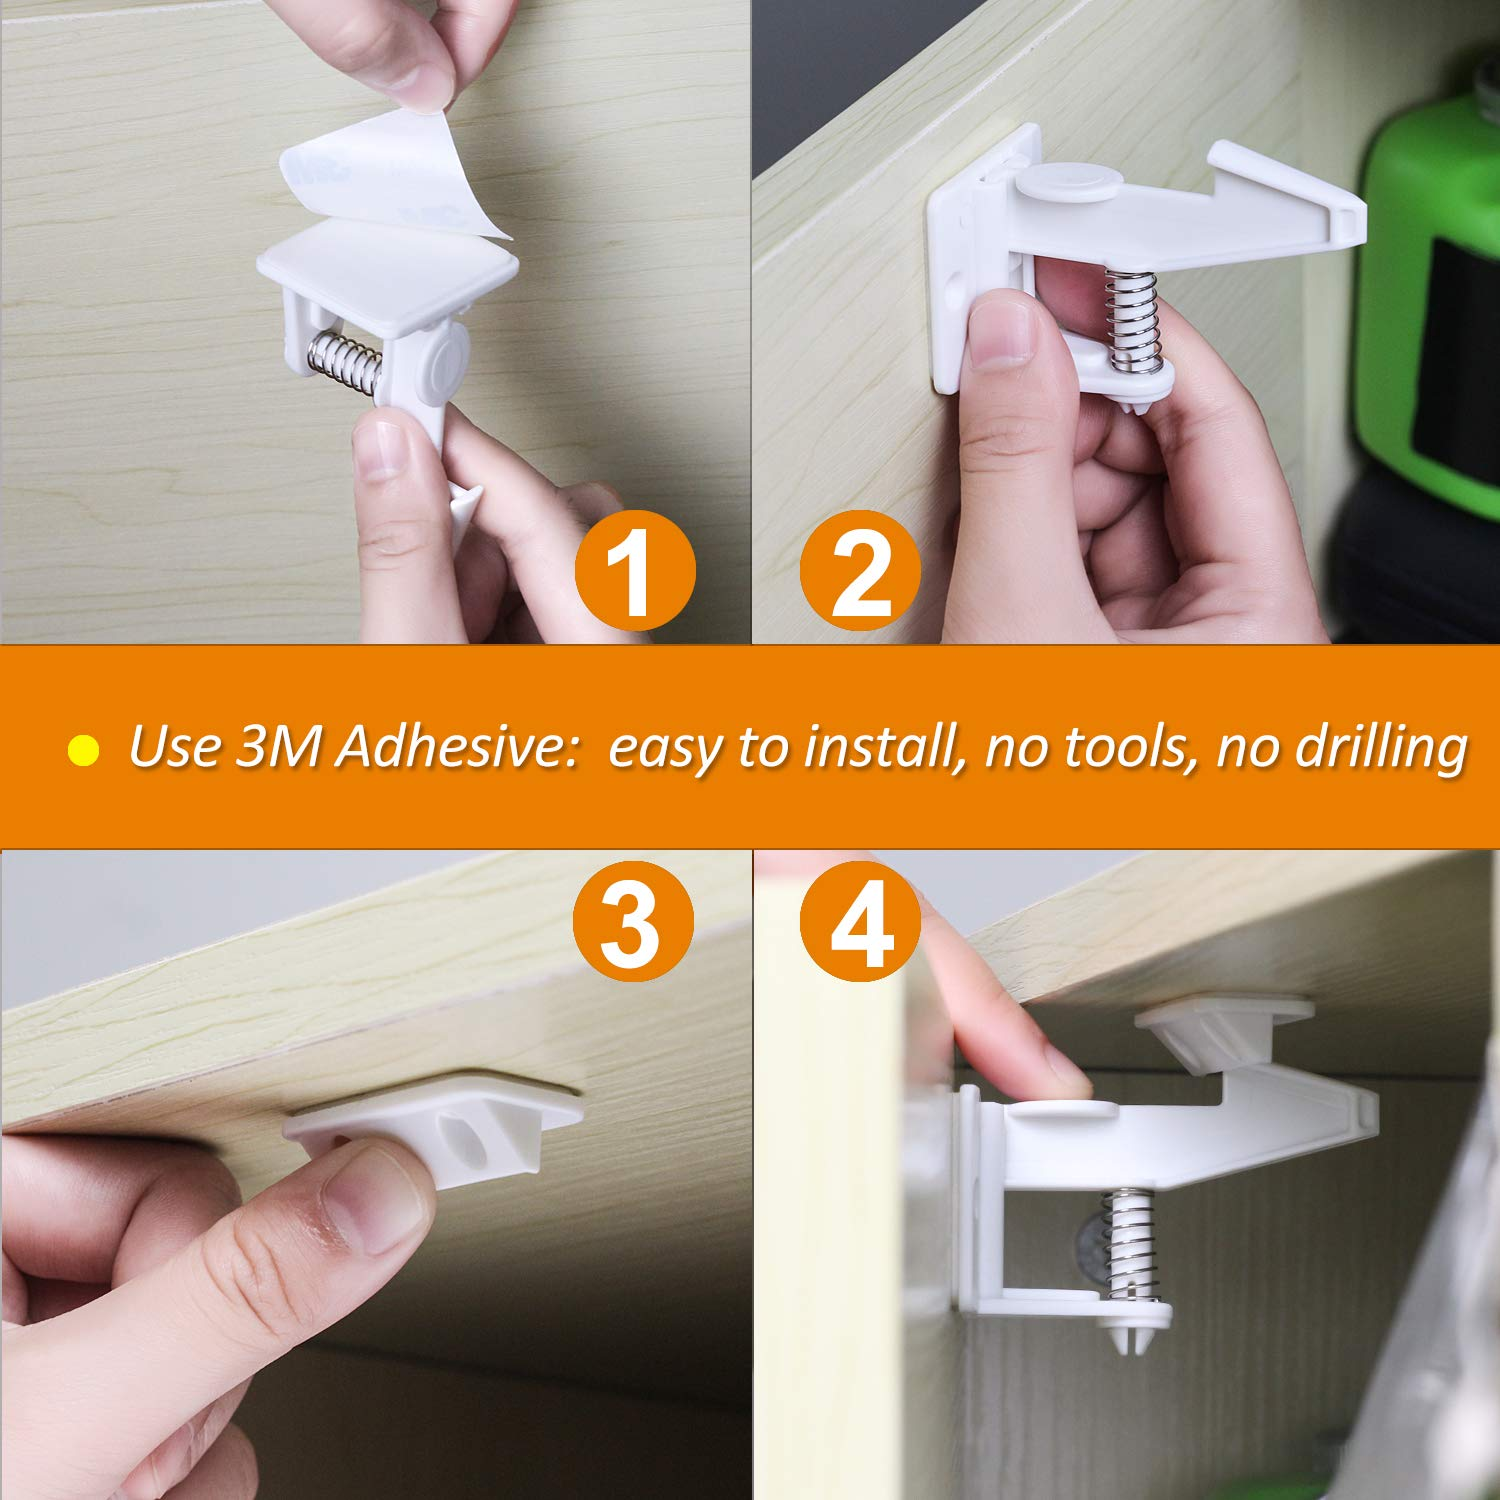 with 3M Adhesive Tape Lifelf Child Safety Locks Made of ABS 10 Buckles and 10 Locks No Installation Tool Required Baby Drawers Cupboard Locks Incl 10 Pack Baby Safety Cabinet Locks